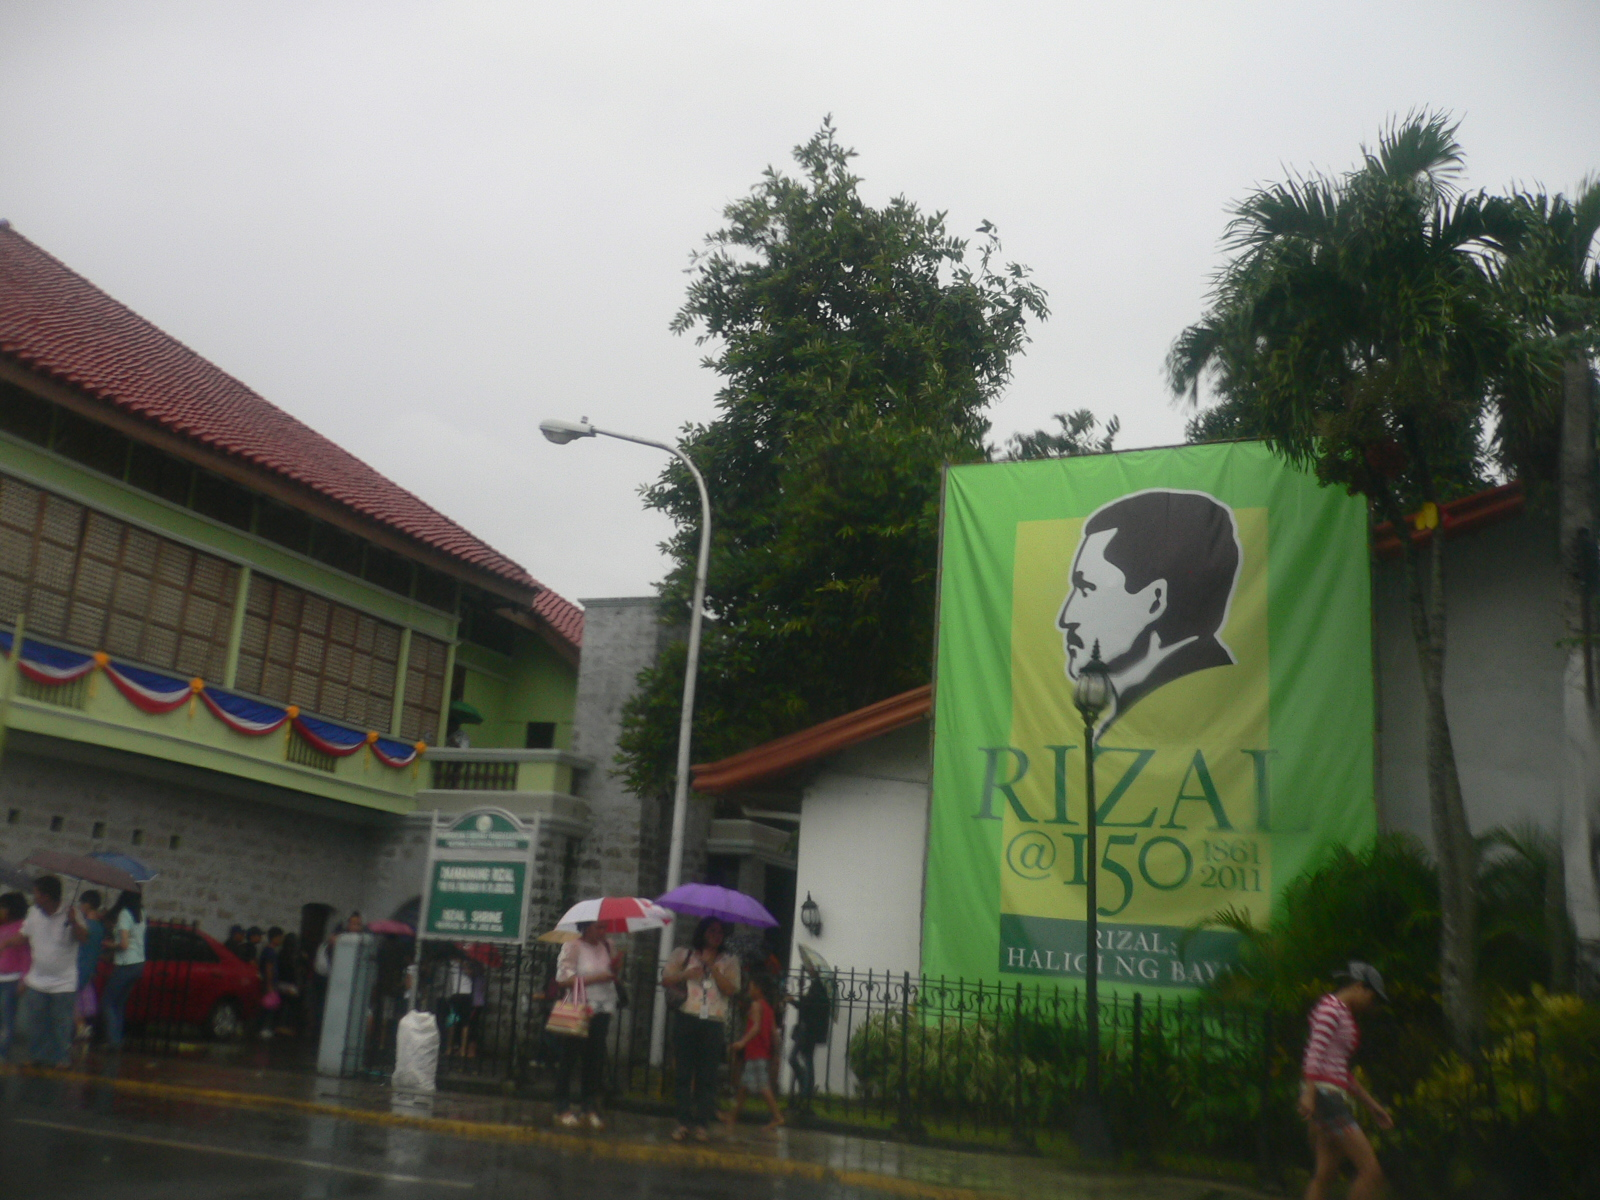 reaction paper of 150th birthday of rizal Just ten days before the 150th birthday of my idol, jose rizal, i finally got my own  lakbay rizal@150 passport  (rizal relief map) where one can already learn  about the rizal sites displayed around the map  reactions:.